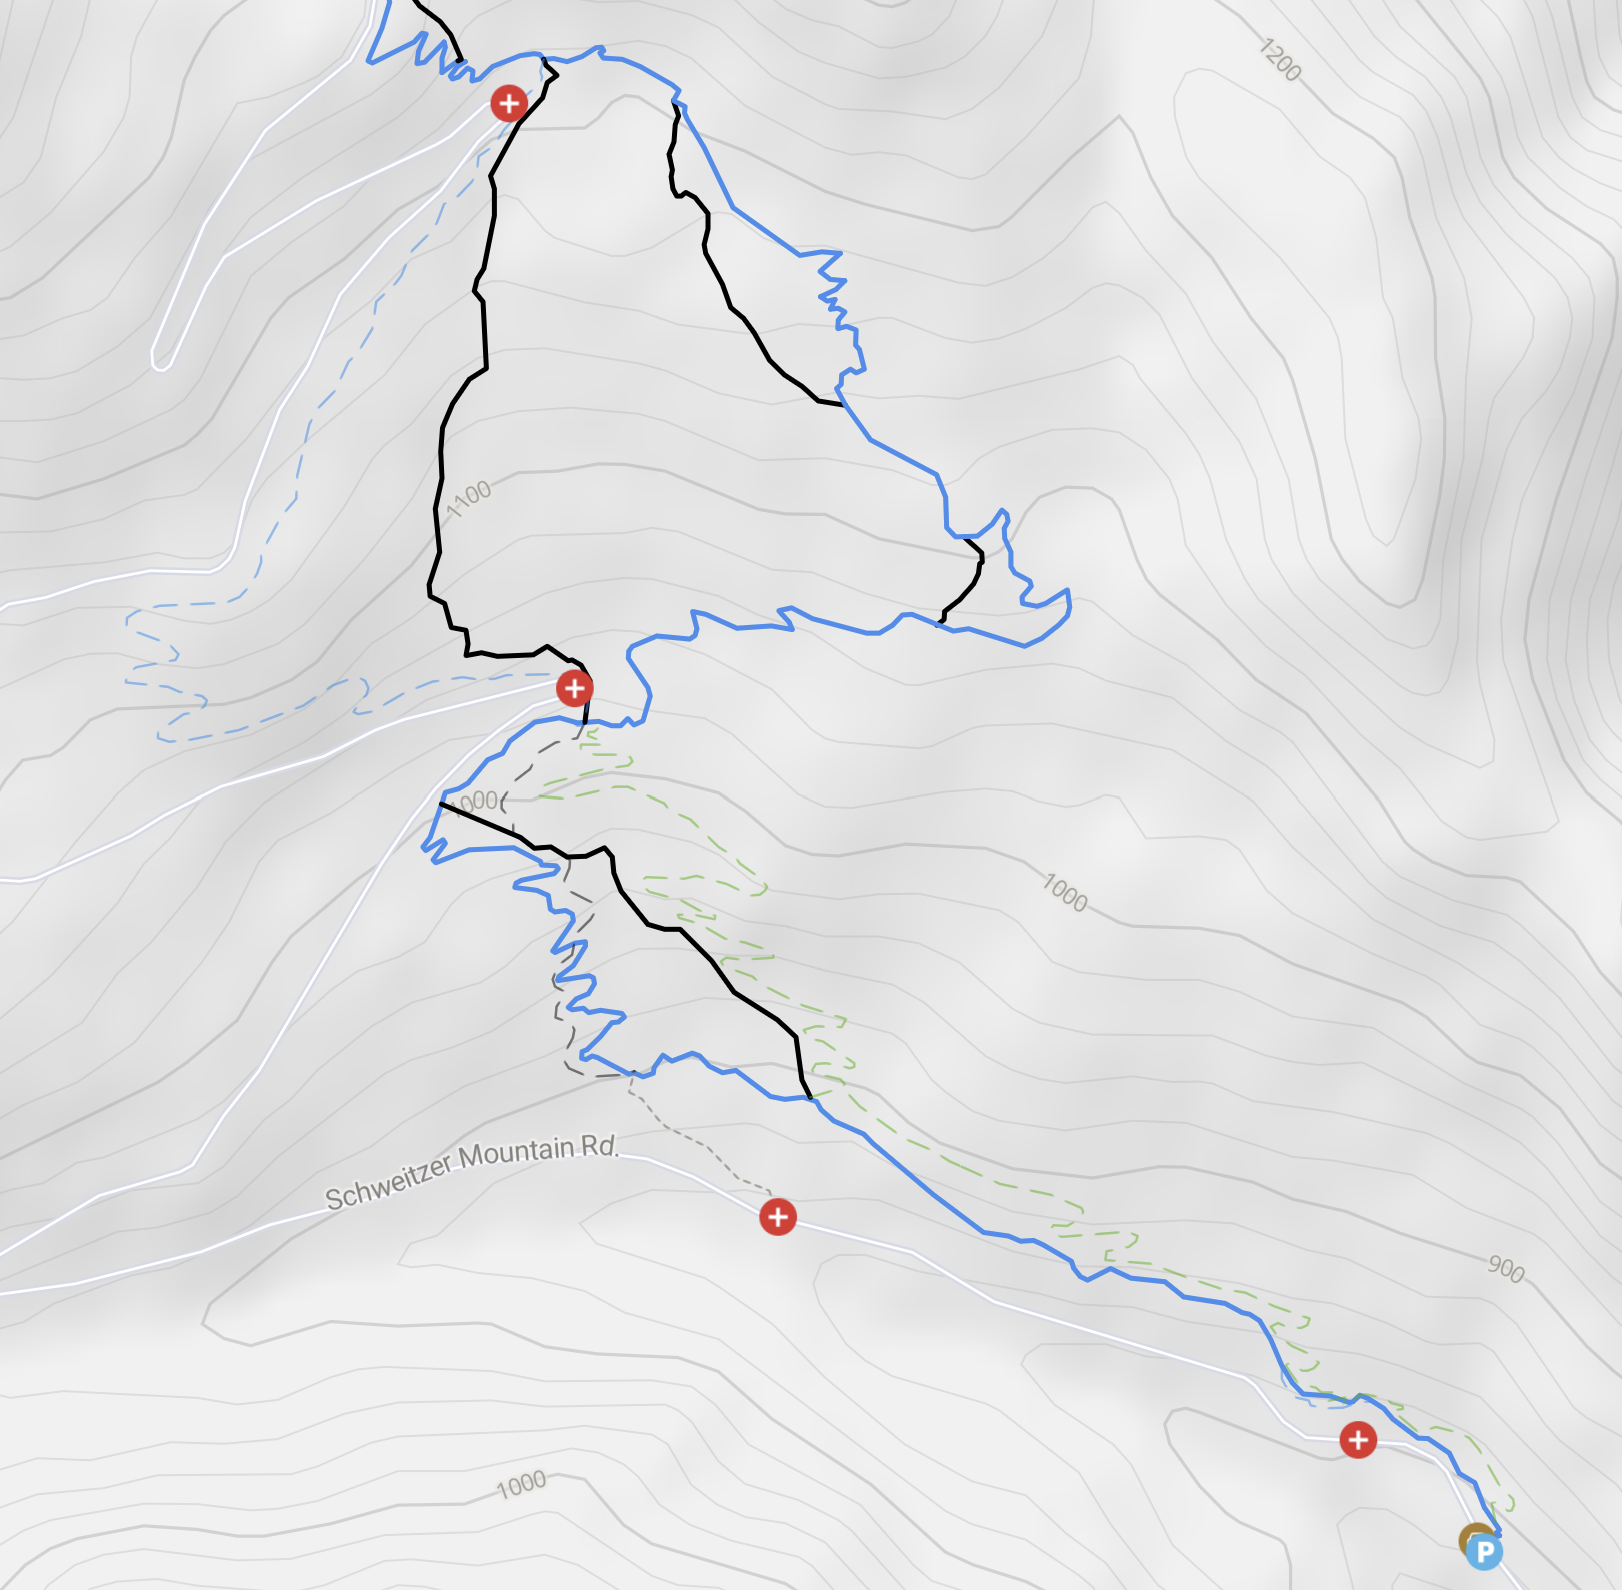 Existing (solid) and proposed (dashed) Lower Basin Trails